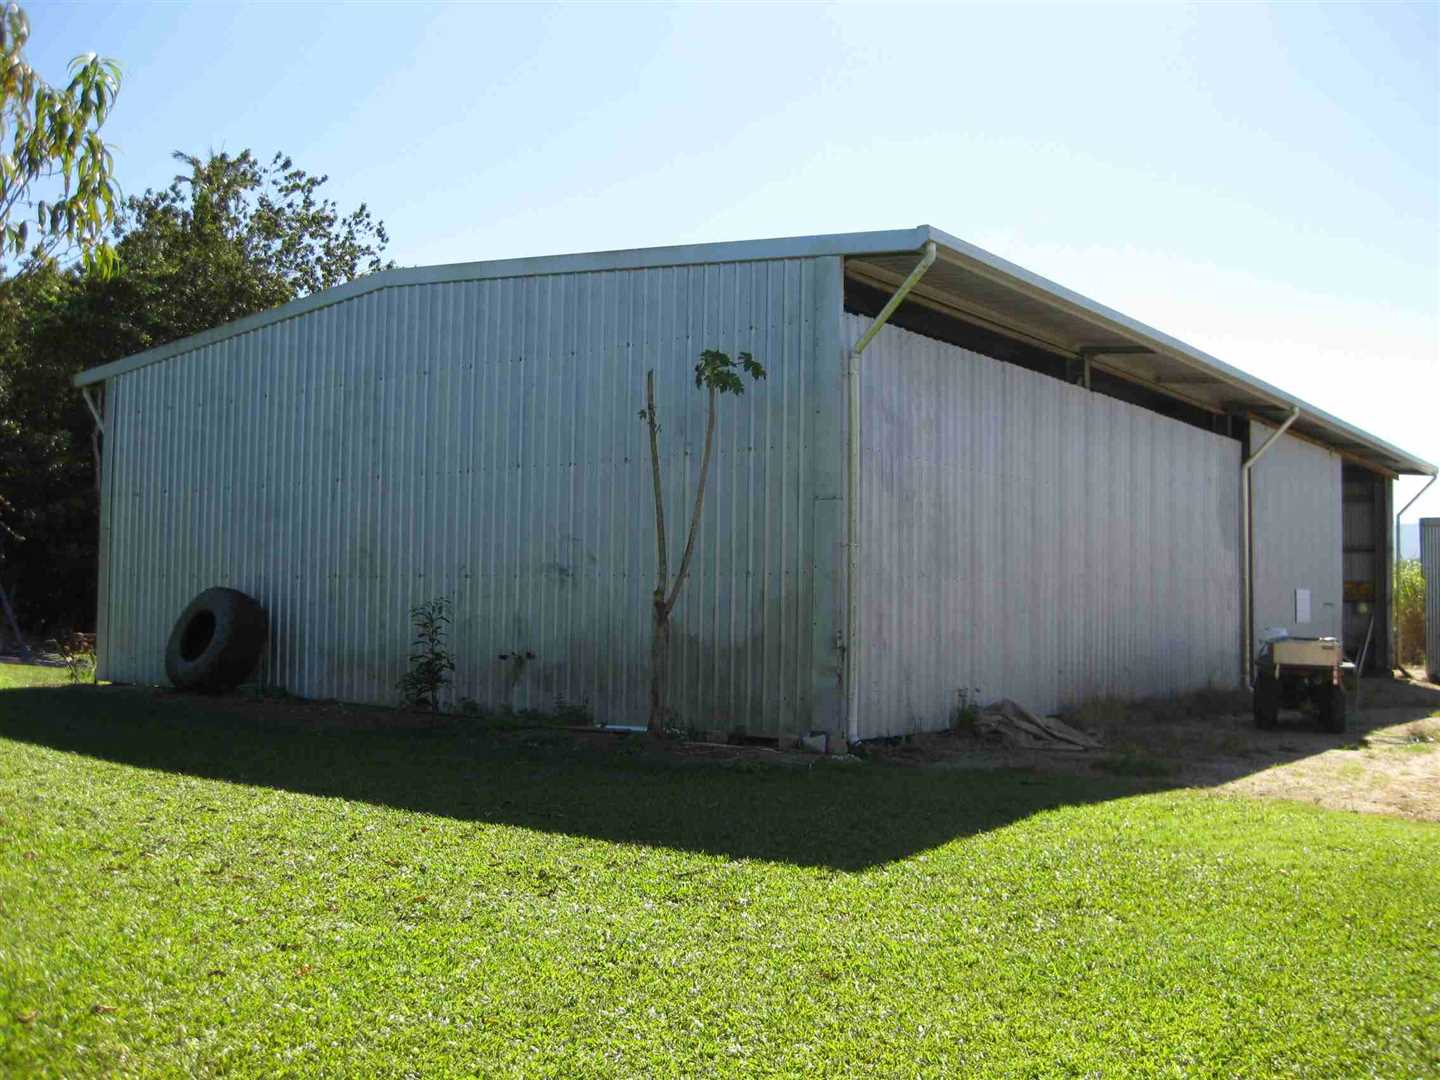 View of part of large farm shed, photo 2